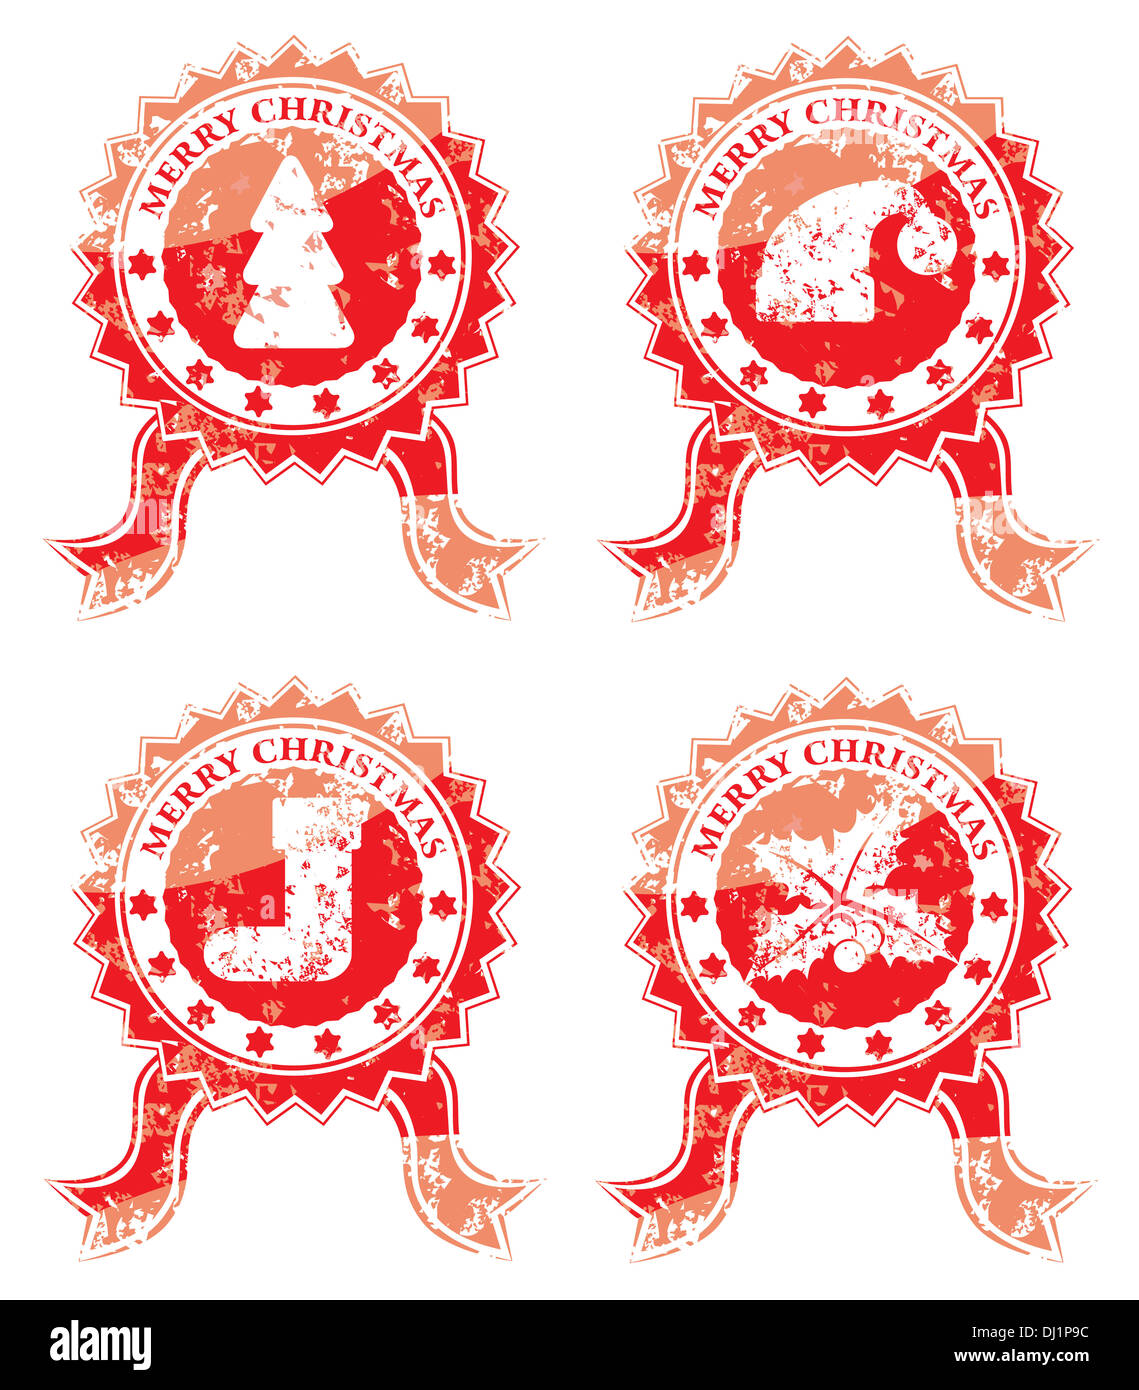 Merry christmas stamp isolated on white Stock Photo: 62734376 - Alamy